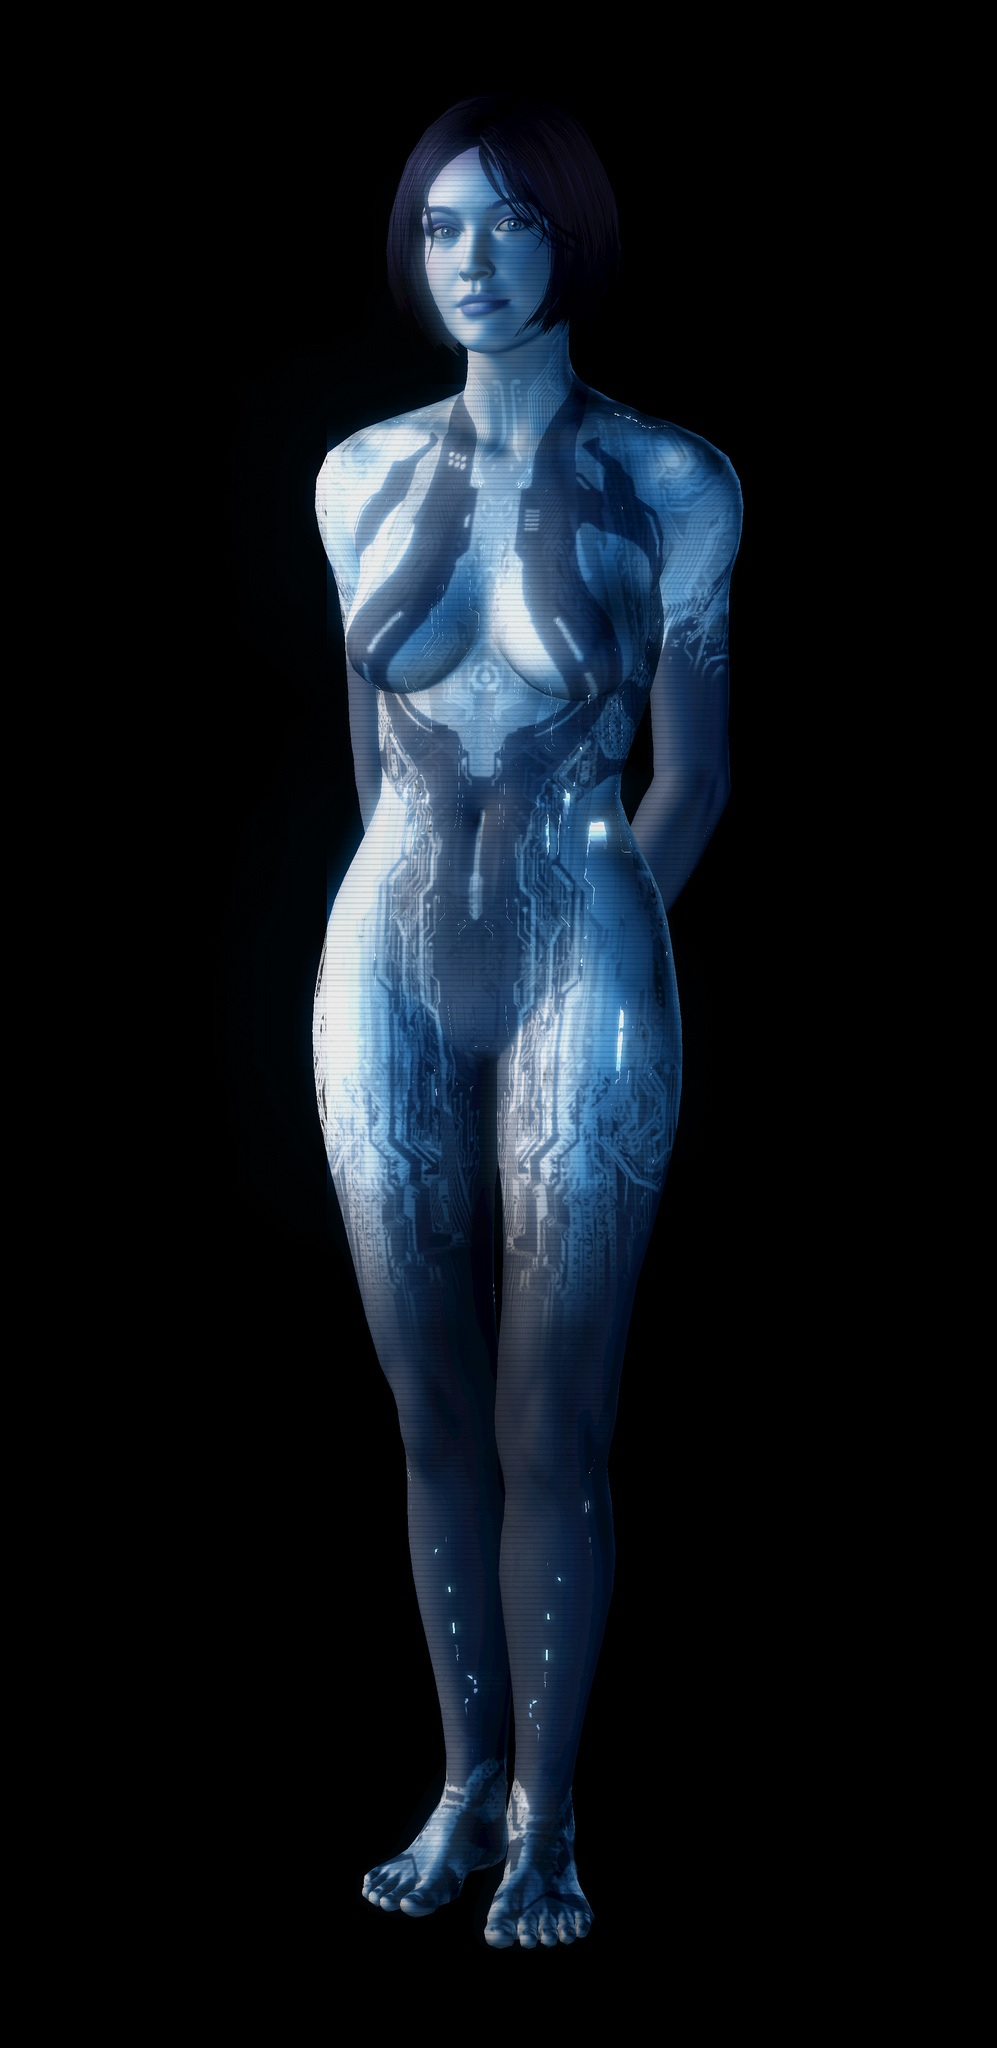 Cortana desnuda porno porno photo